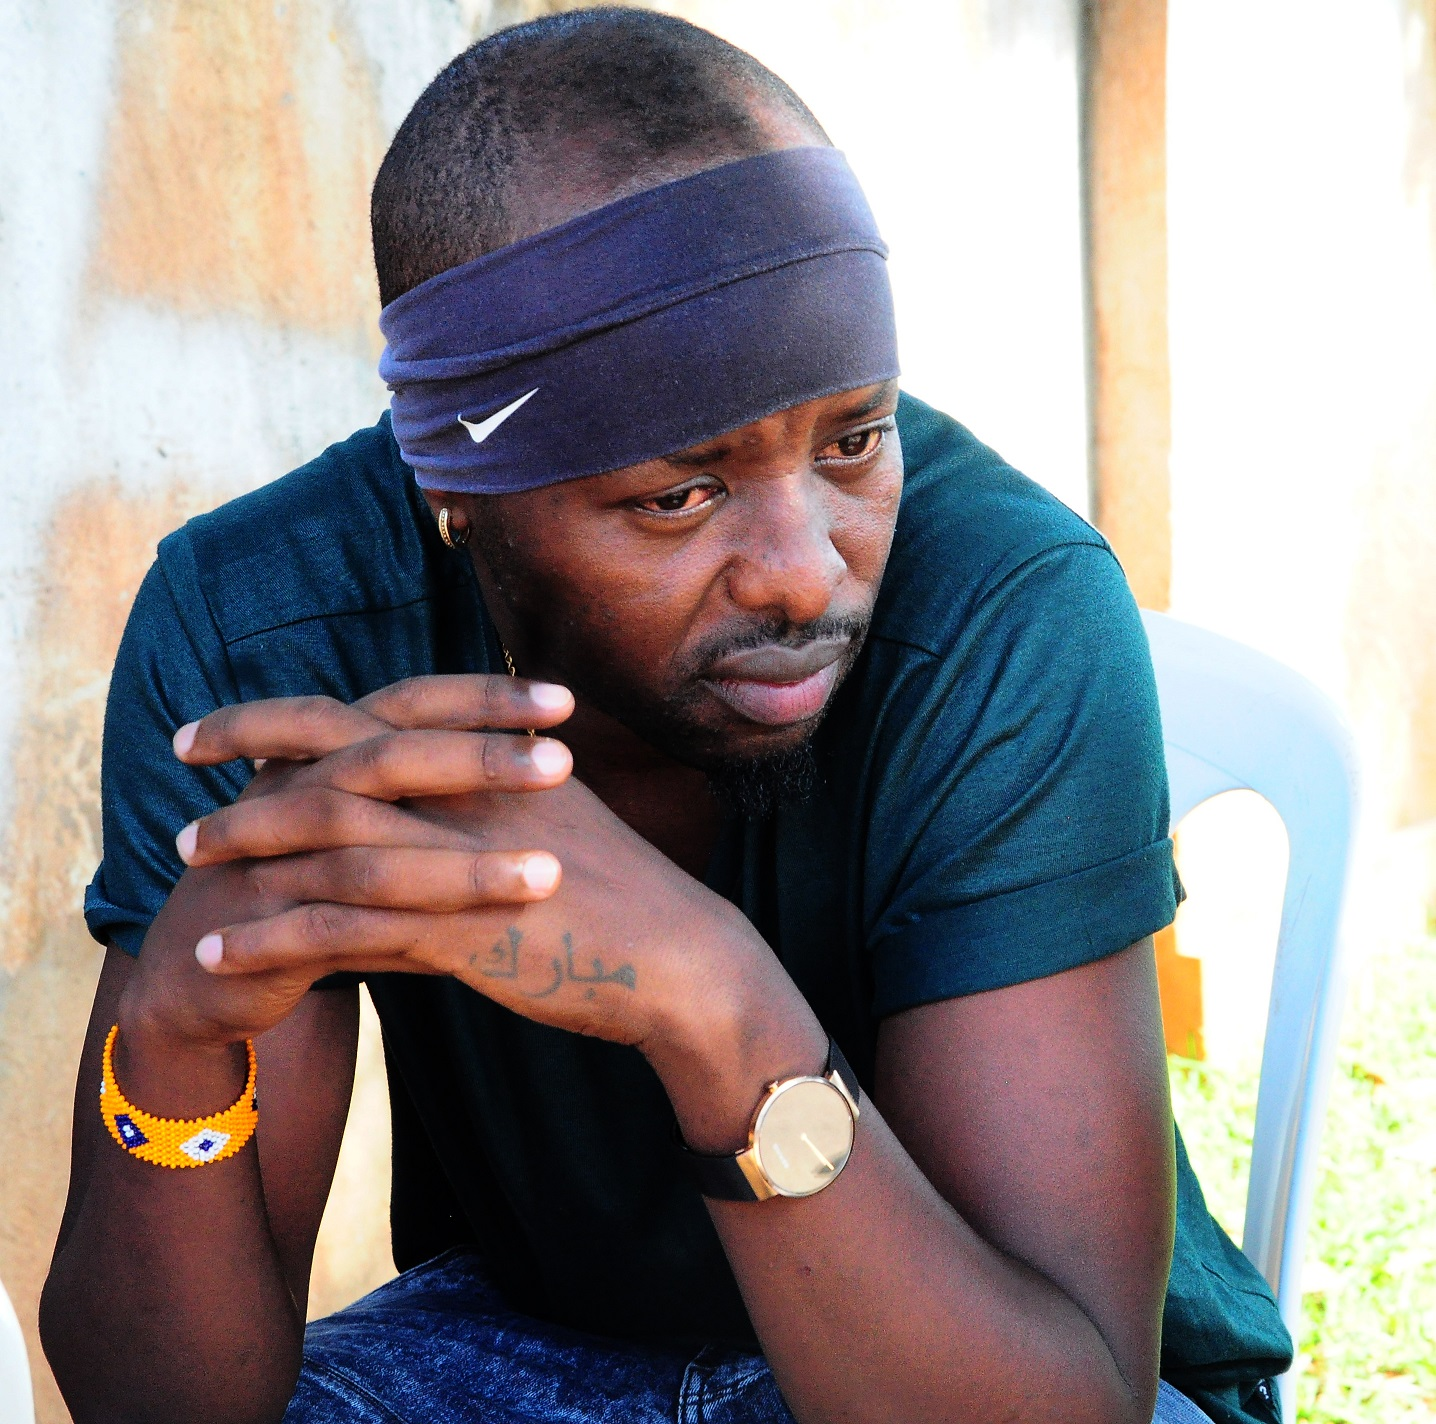 Singer Eddy Kenzo blames people for changing Nalubaale, the original name of Lake Victoria. (FILE PHOTO)